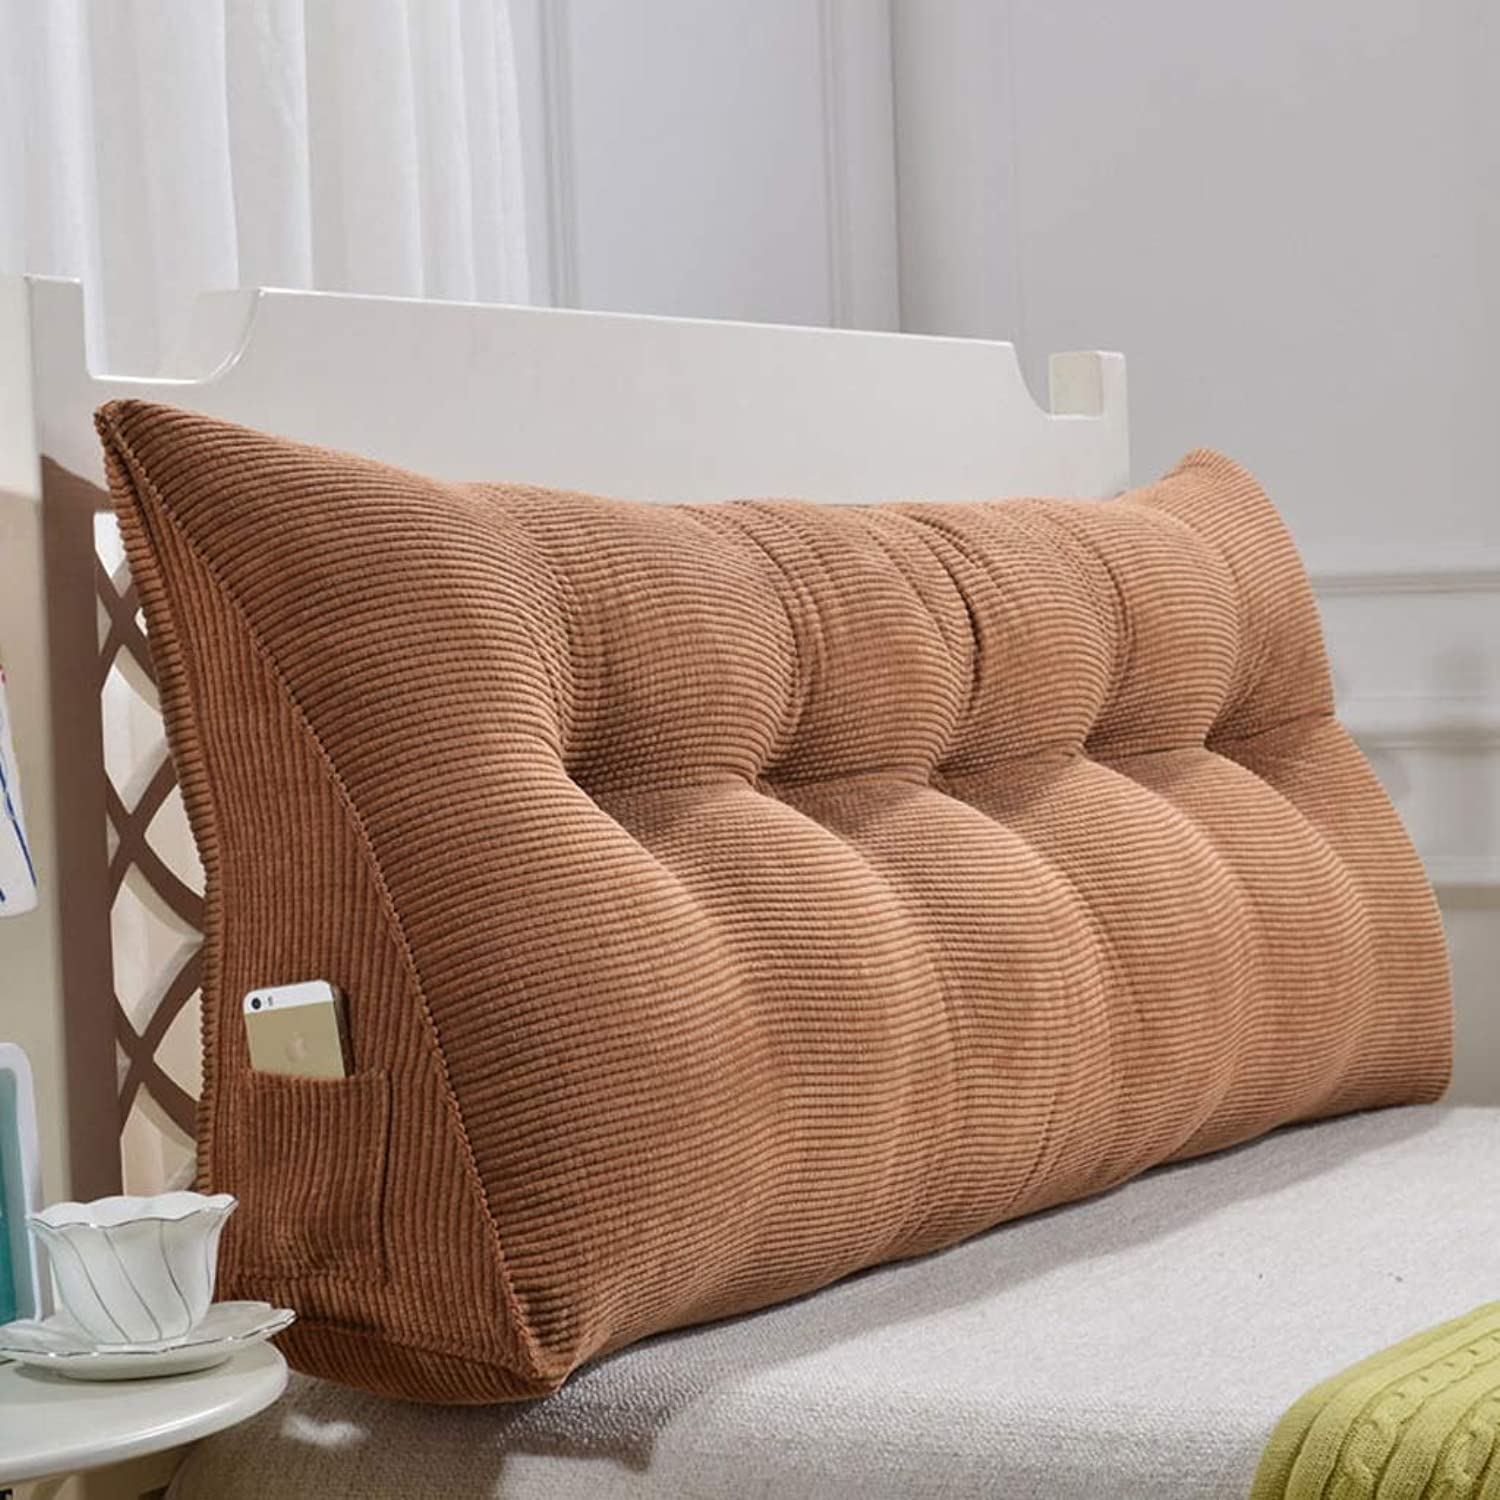 Bed Cushion Back Lumbar Support Pillow Reading Pillow for Bed Headboard Backrest Sofa Cushion Washable (color   Brown, Size   60CM)